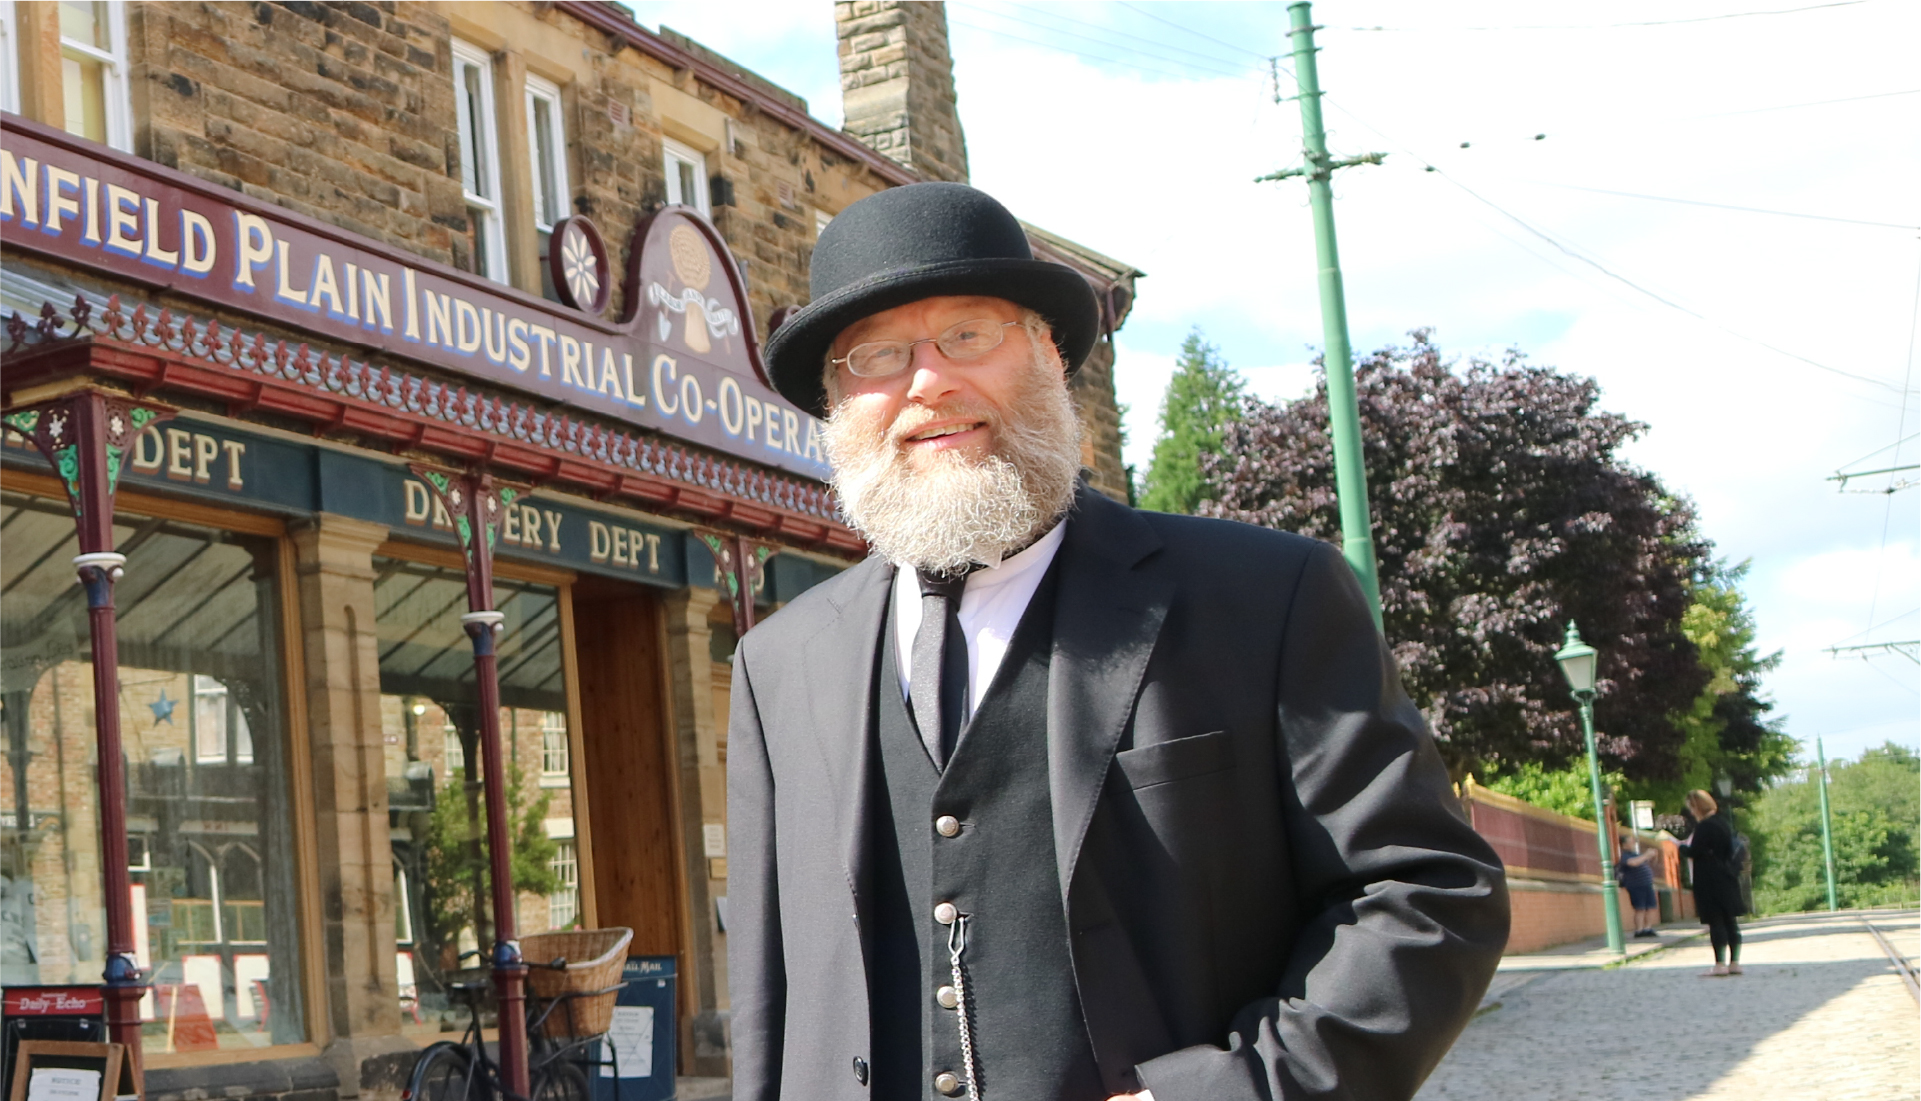 Man in bowler hat and suit at Beamish